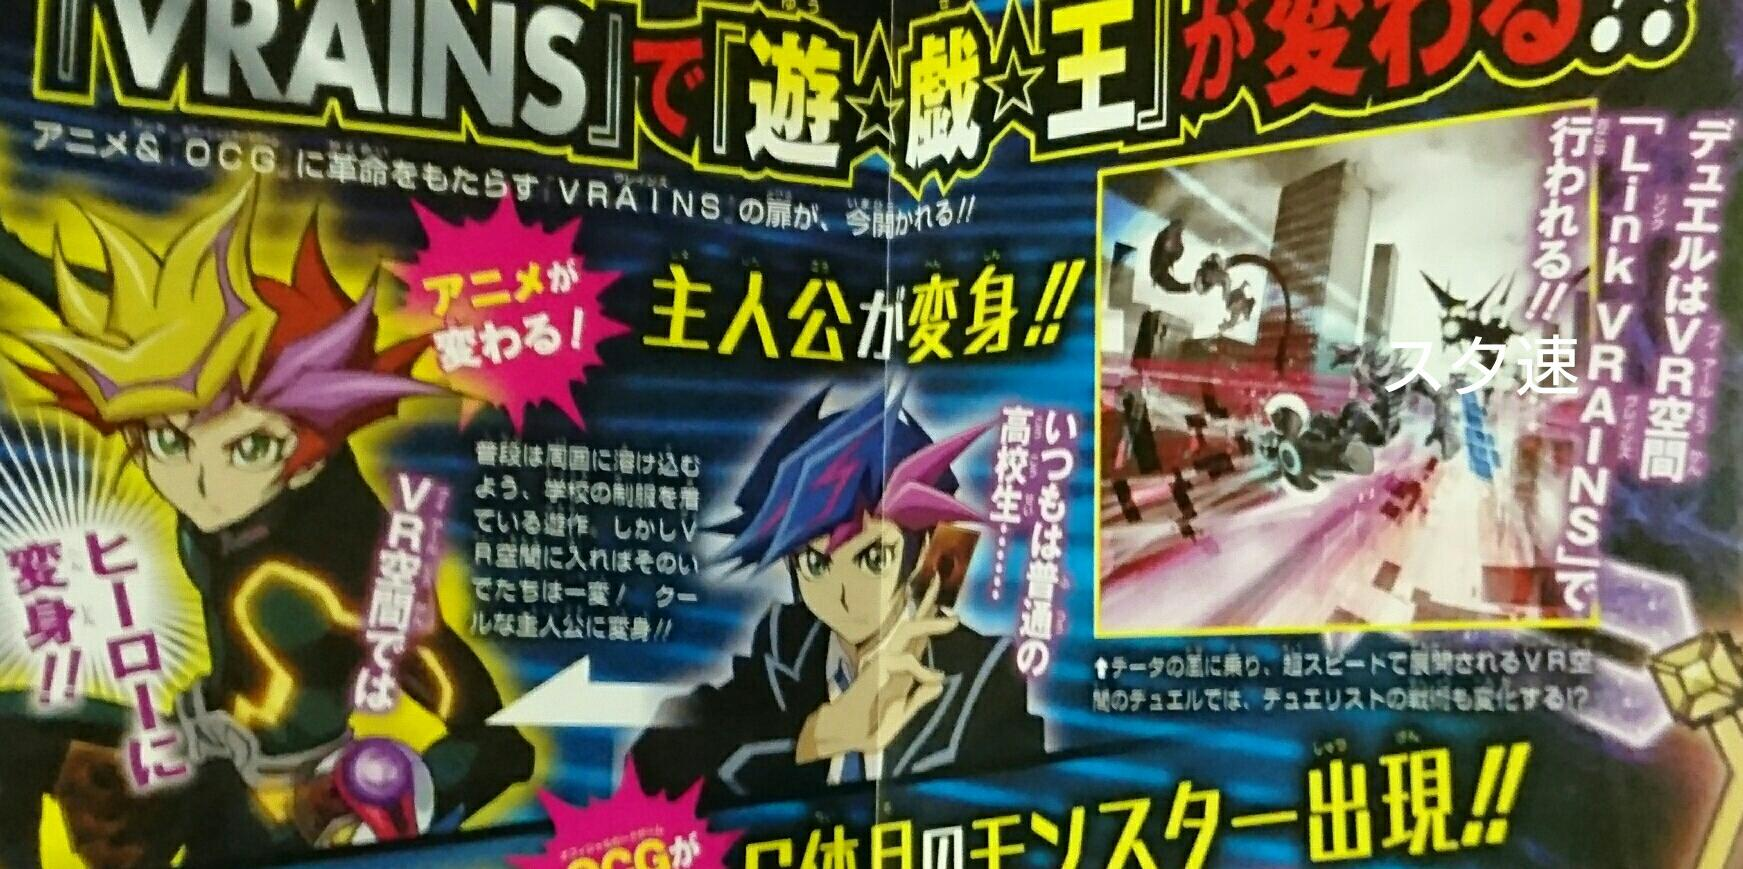 [VJMP Spoilers] Yu-Gi-Oh! VRAINS, Promos & Reprints - Beyond the Duel